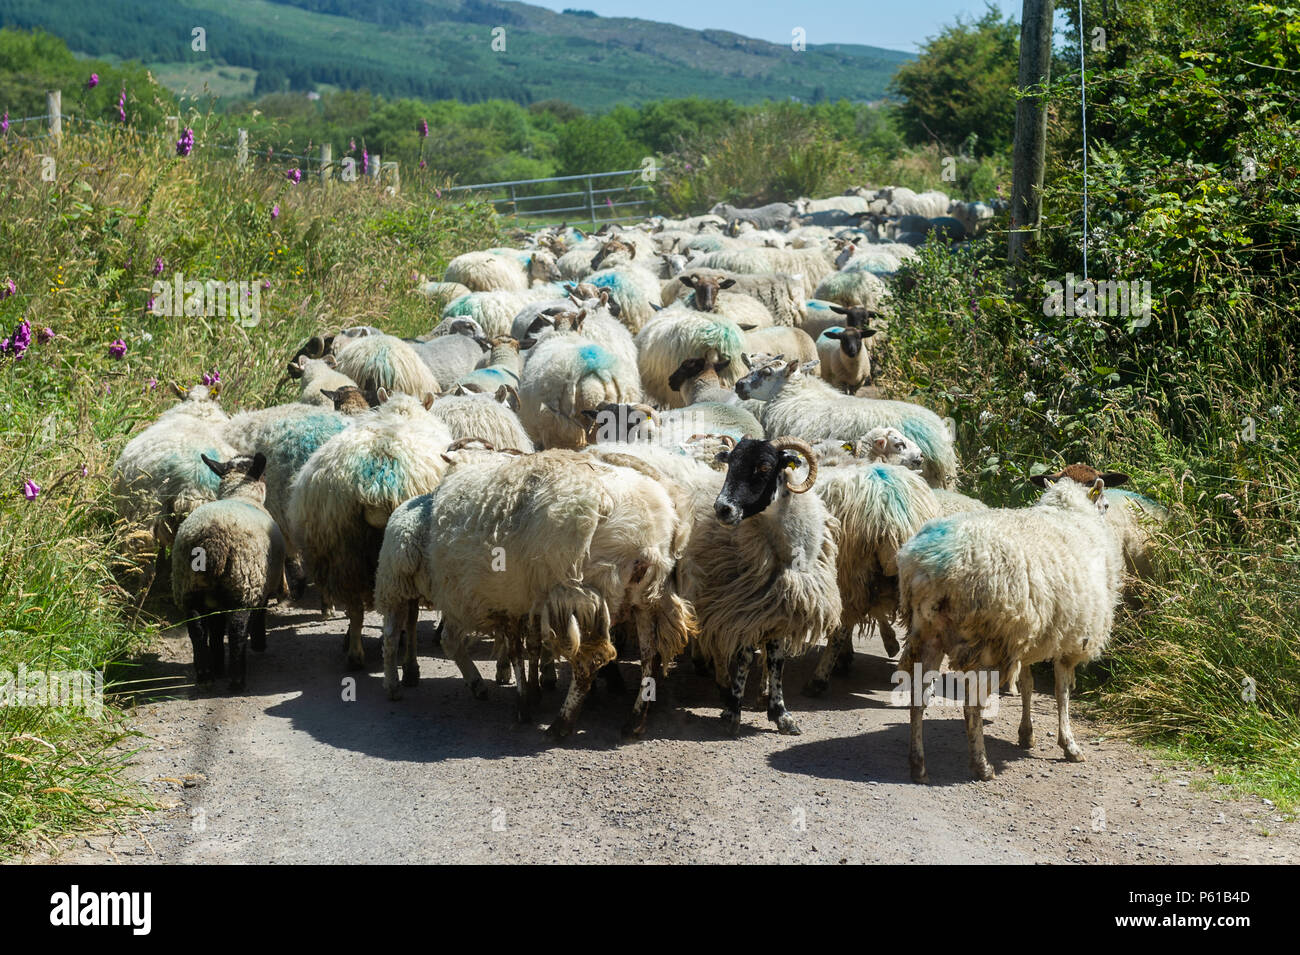 Ballydehob, Ireland. 28th June, 2018. On yet another blisteringly hot day in Ireland, a flock of sheep owned by the Ward family, wait to be moved for shearing in Lisheenacreagh, Ballydehob. Temperatures will stay in the high 20's today and tomorrow but rain is forecast over the weekend and into the early part of next week. Credit: Andy Gibson/Alamy Live News. - Stock Image